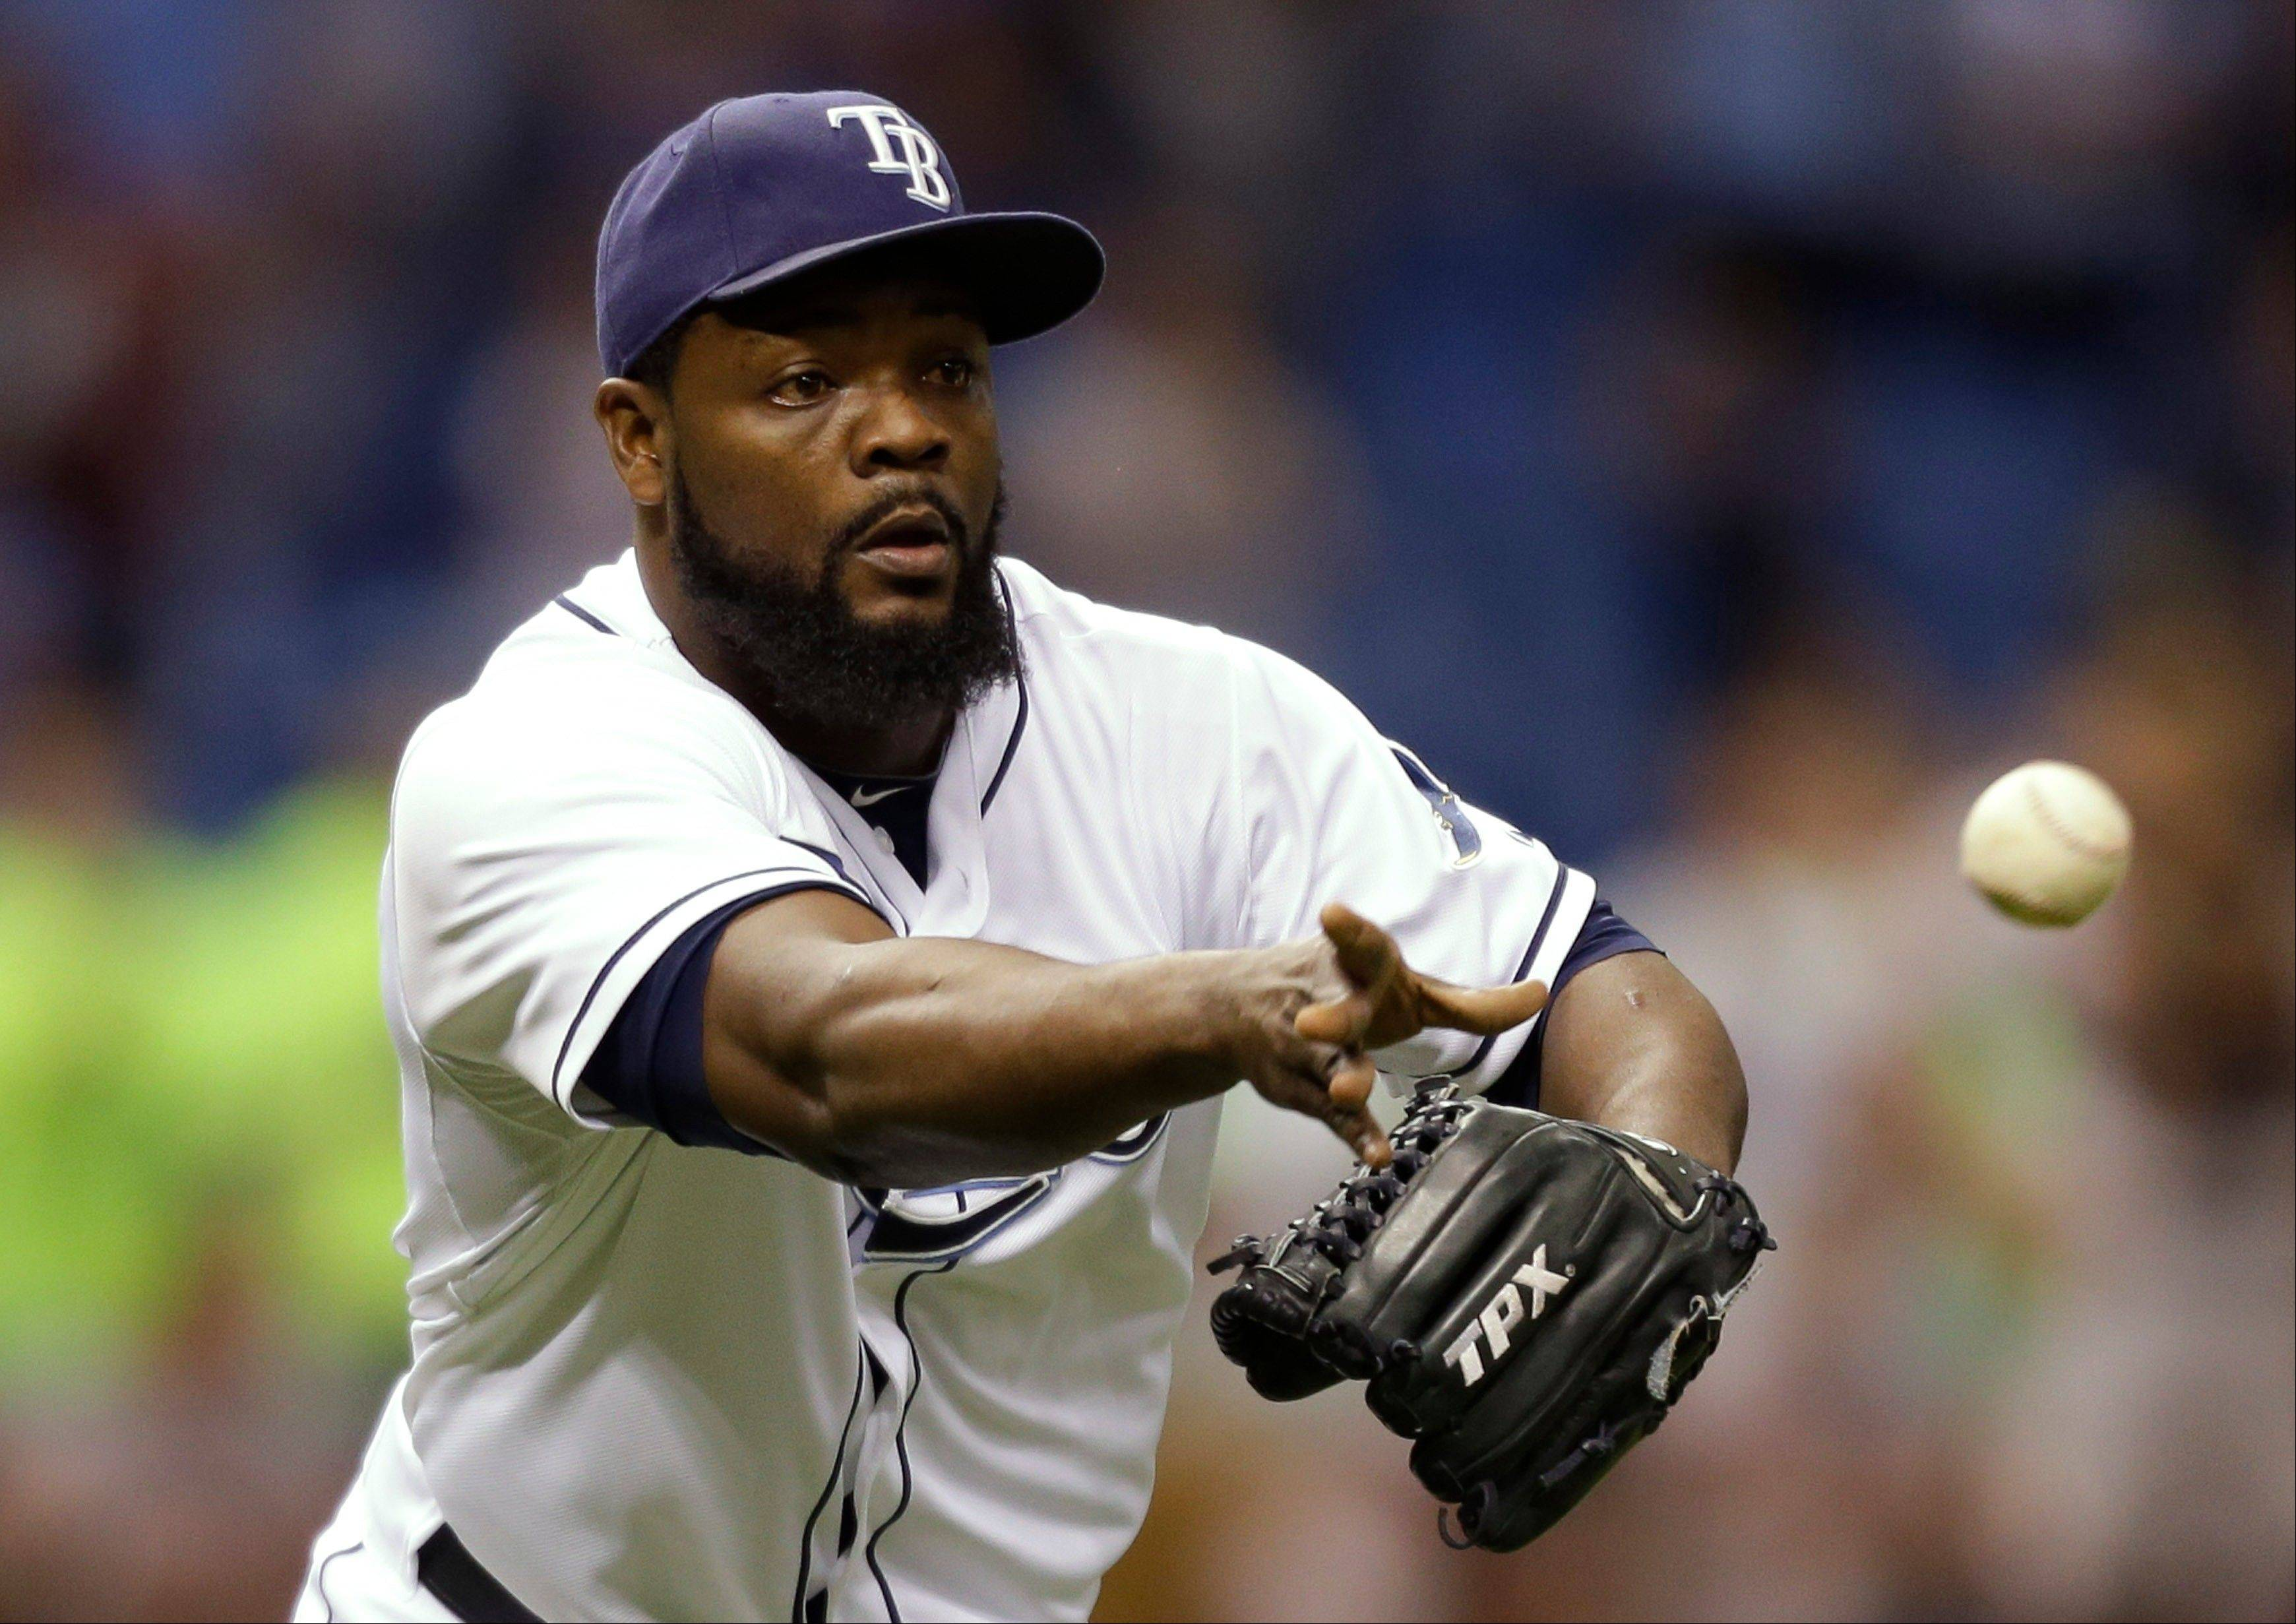 Rays relief pitcher Fernando Rodney flips the ball to first base to get Baltimore's Endy Chavez and end the game Monday in St. Petersburg, Fla.